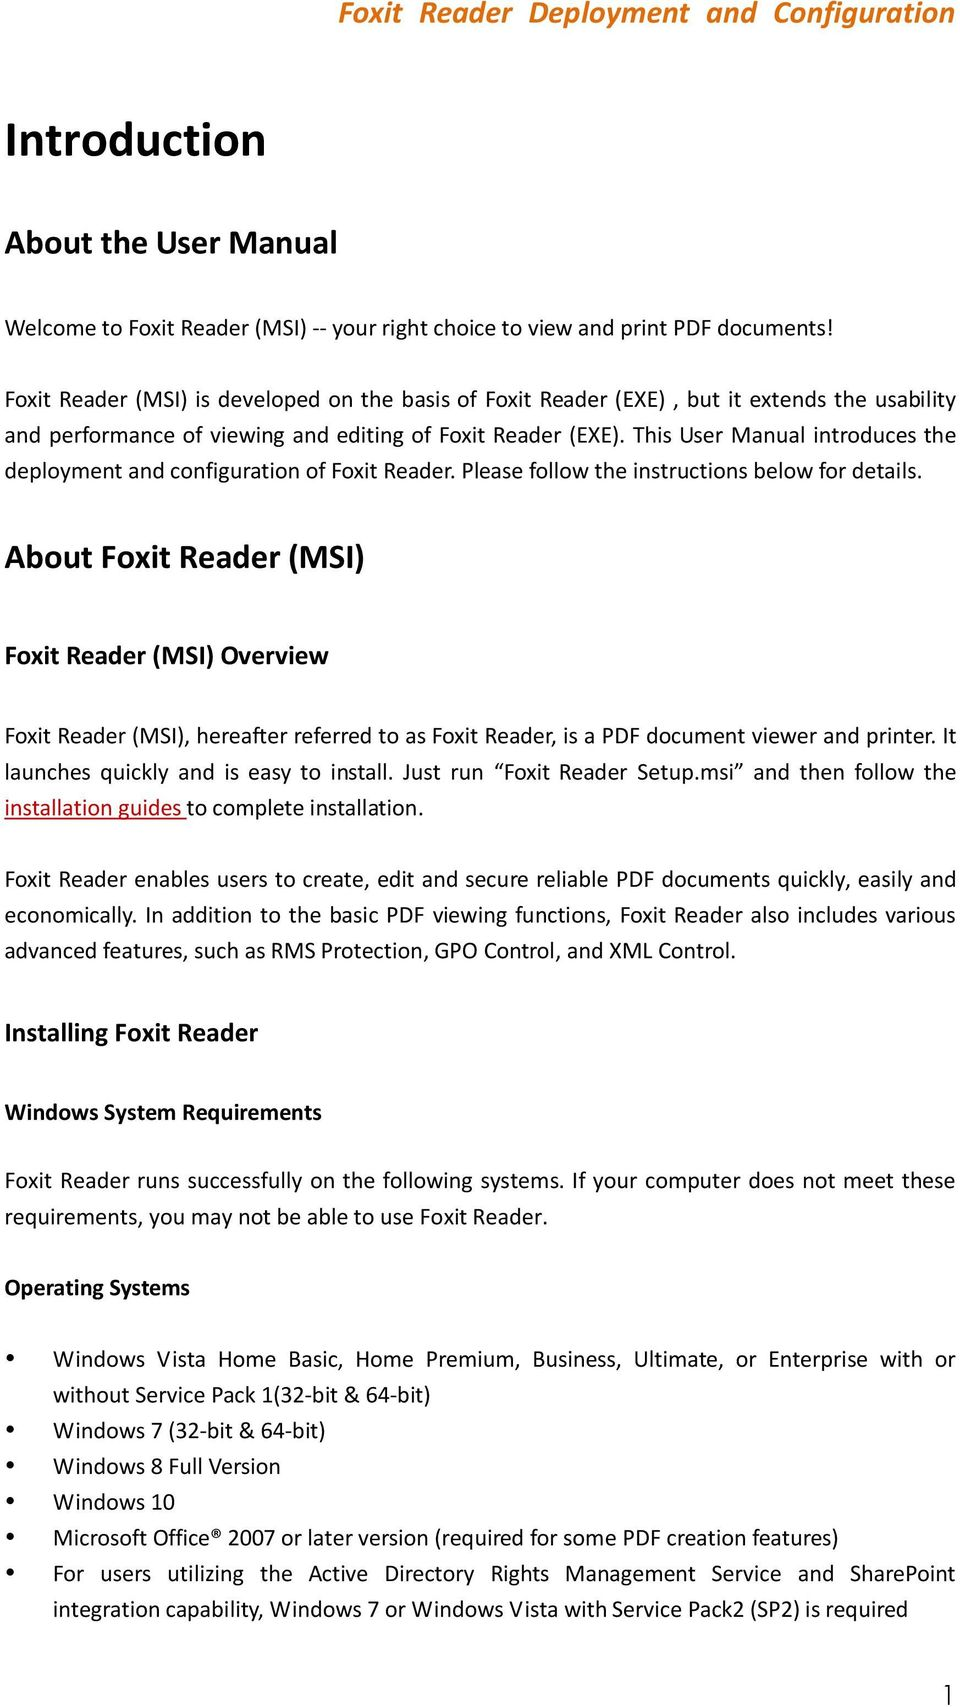 This User Manual introduces the deployment and configuration of Foxit Reader. Please follow the instructions below for details.